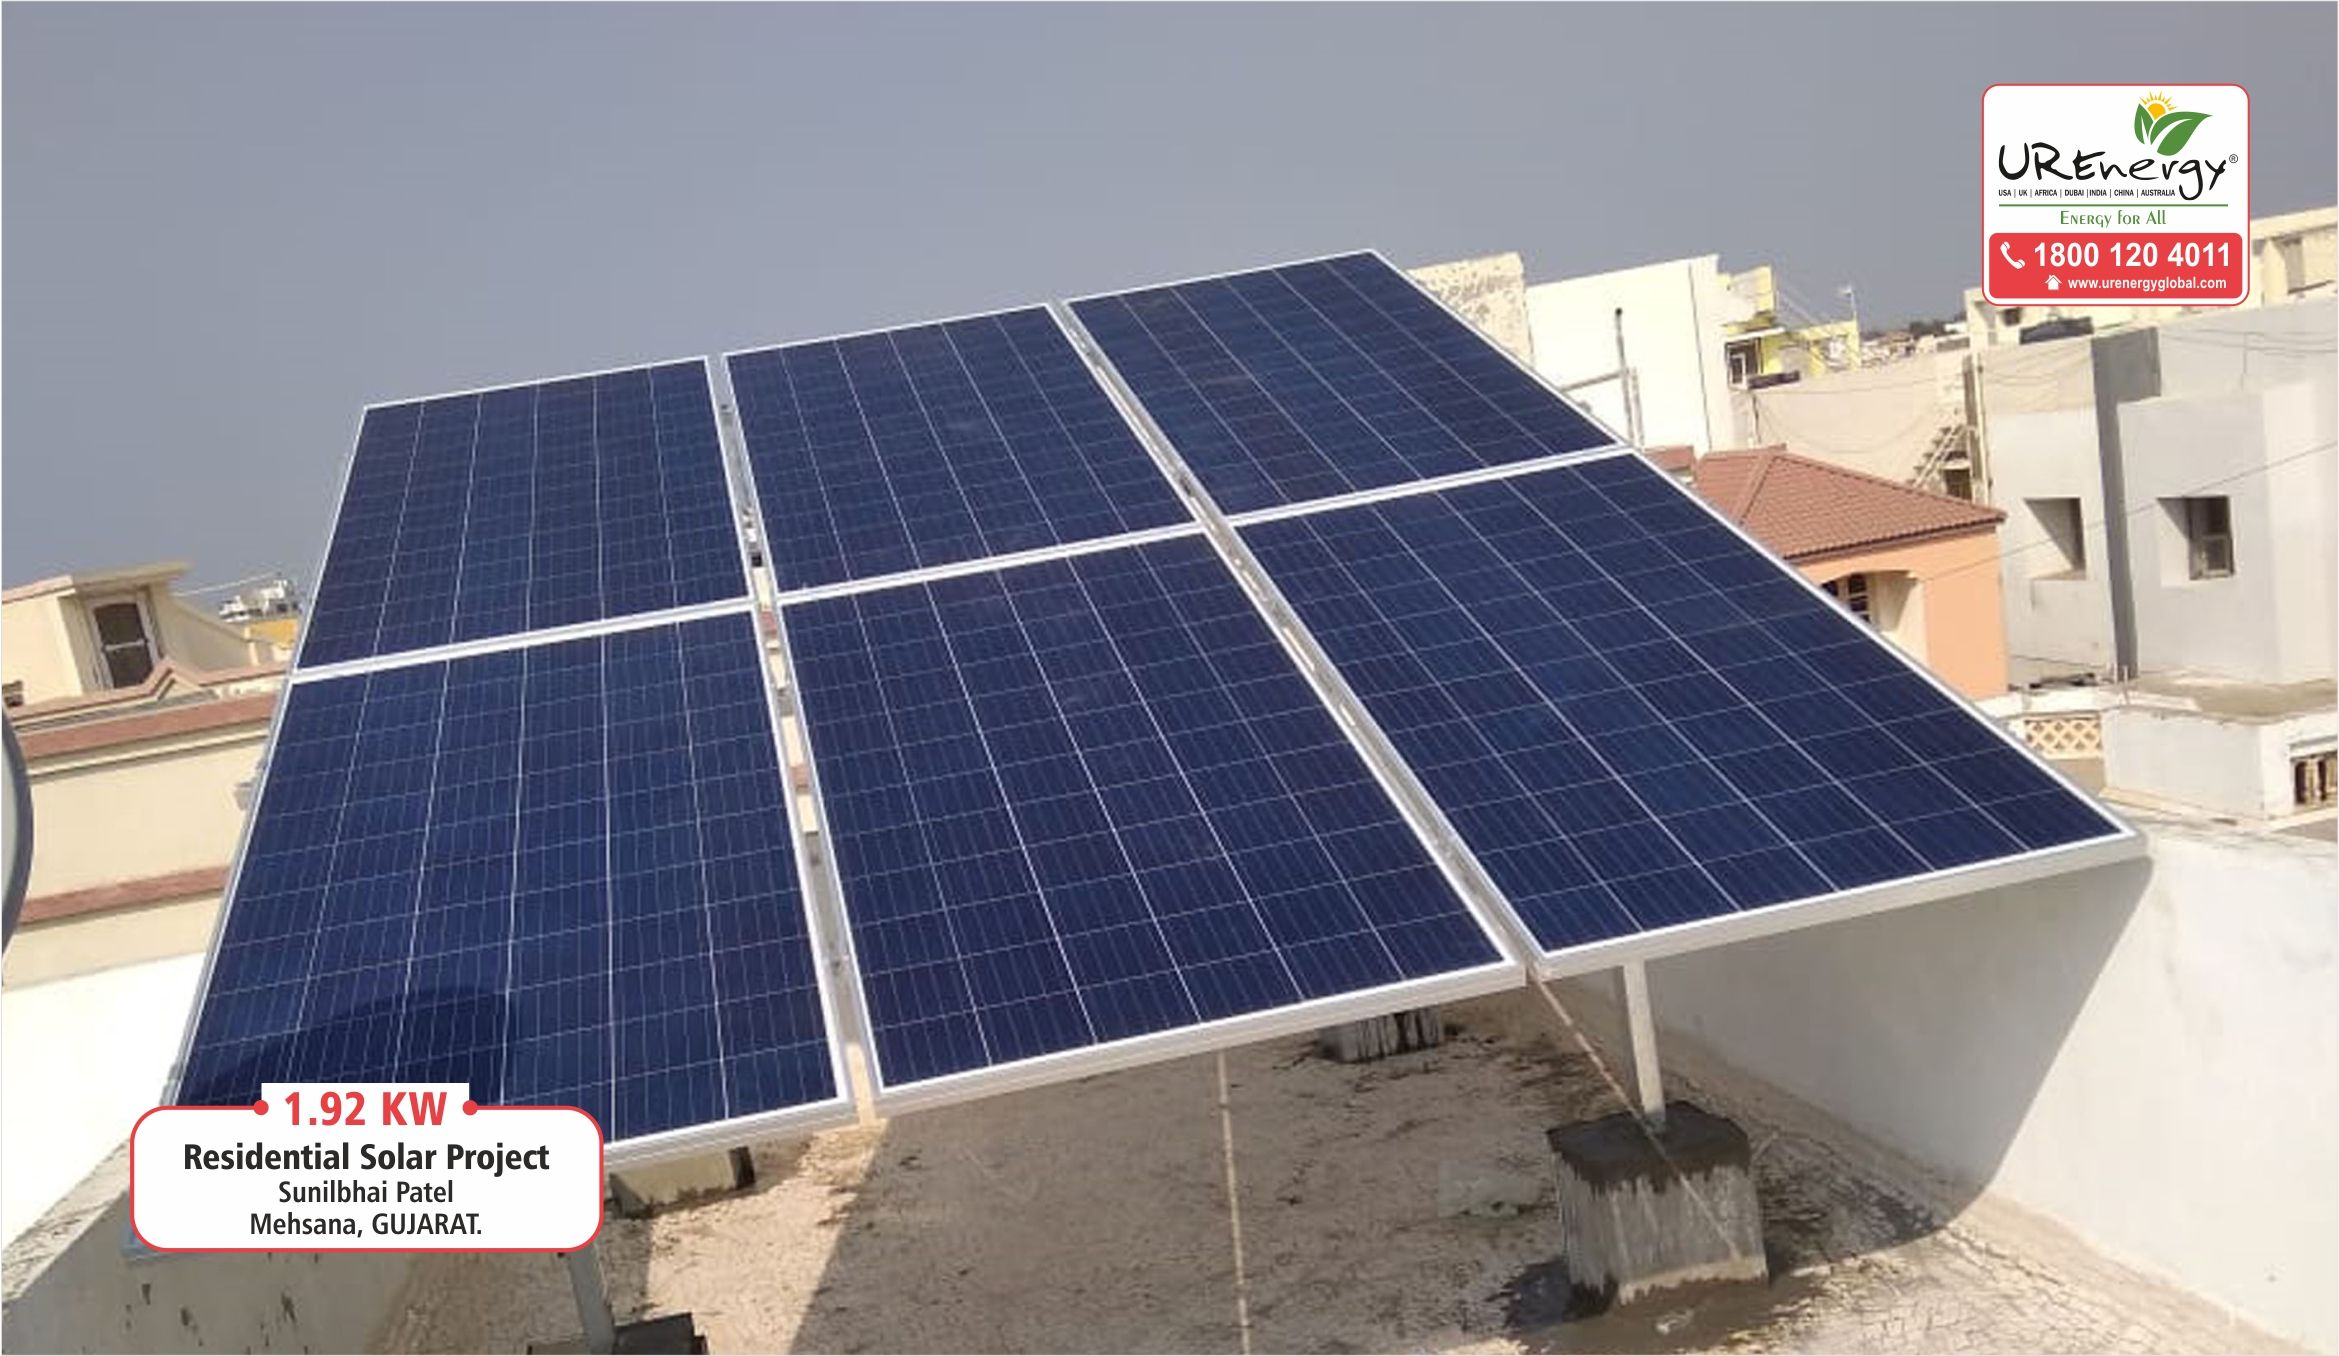 1 92 Kw Residential Rooftop Solar Power Project Installed At Gujarat India By U R Energy Team Solar Panel Inver Solar Residential Solar Solar Power